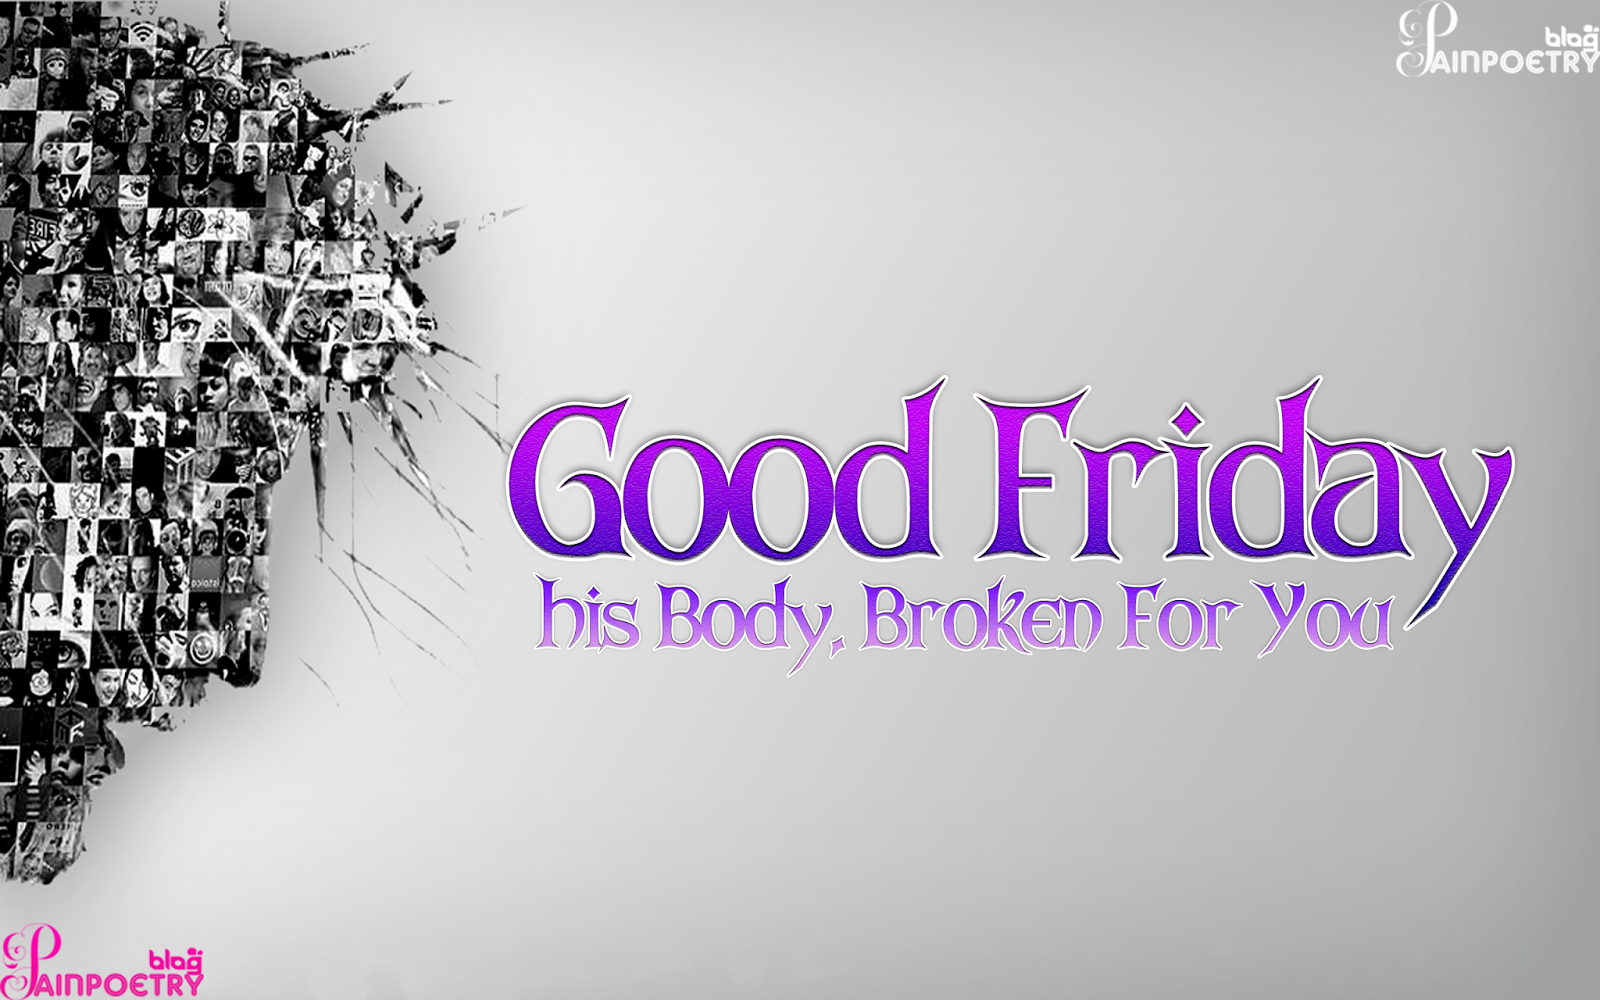 Good-Friday-Writing-Image-Wide